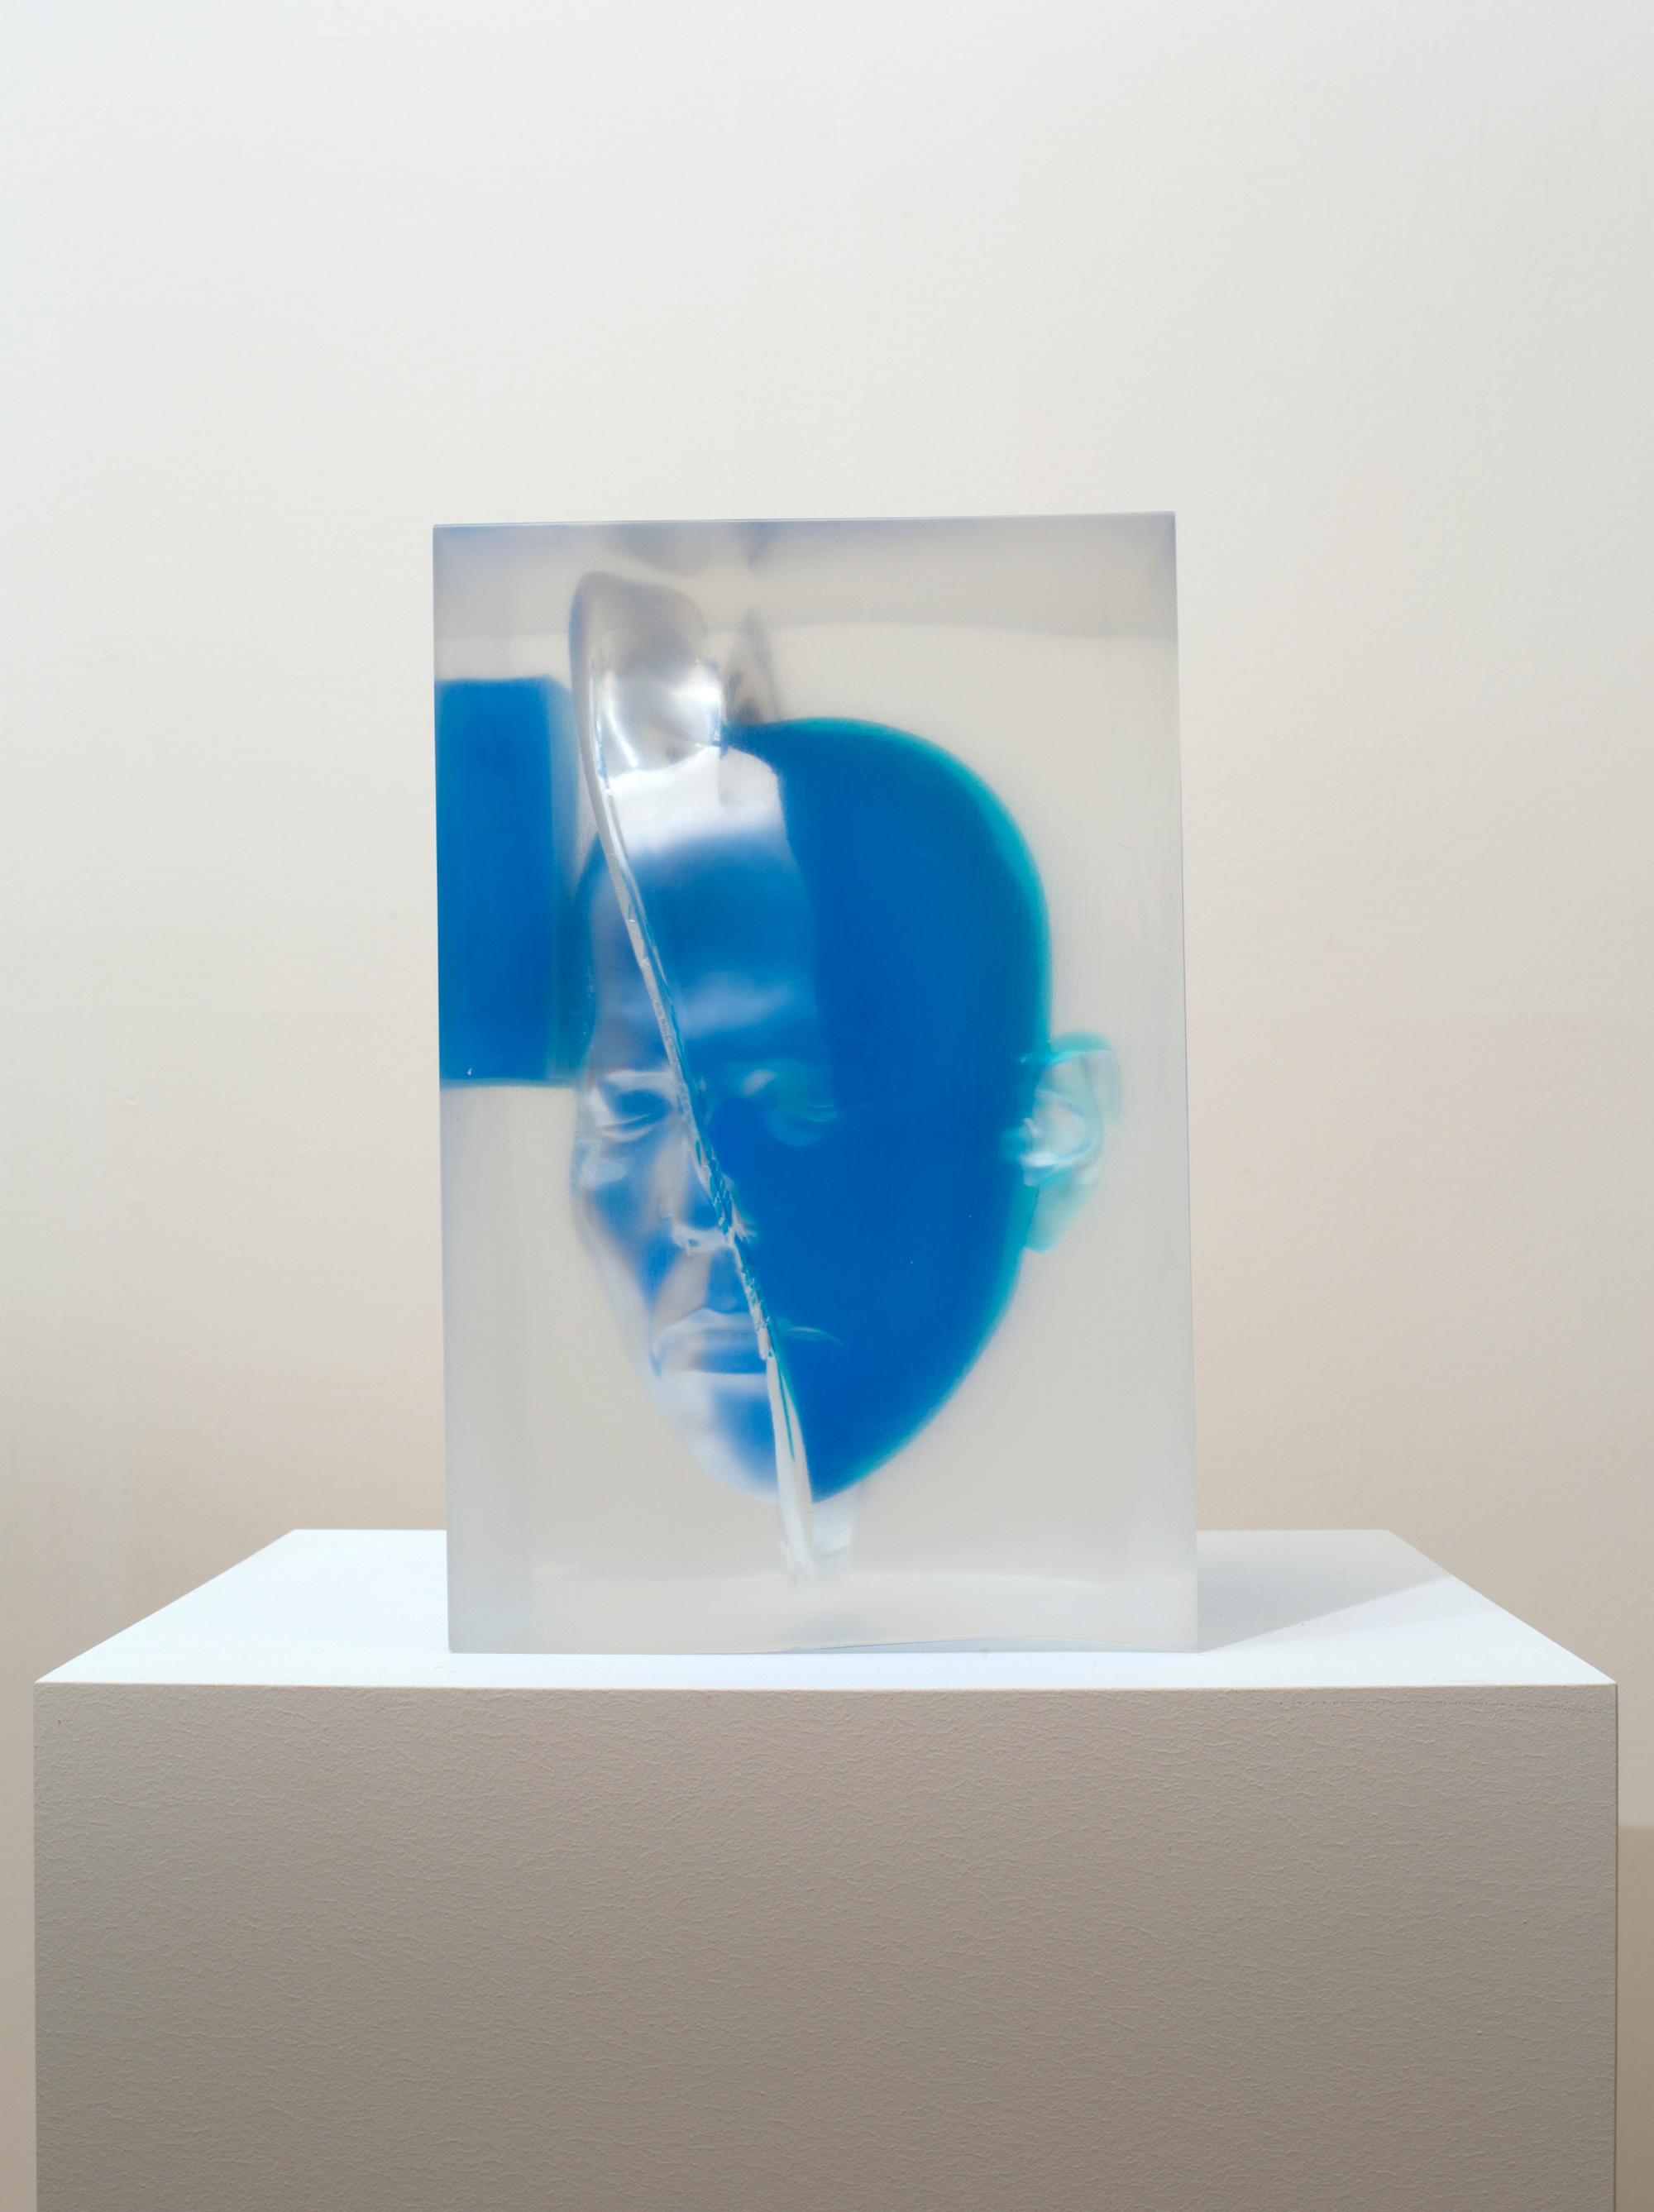 Rona Pondick 2015-2018